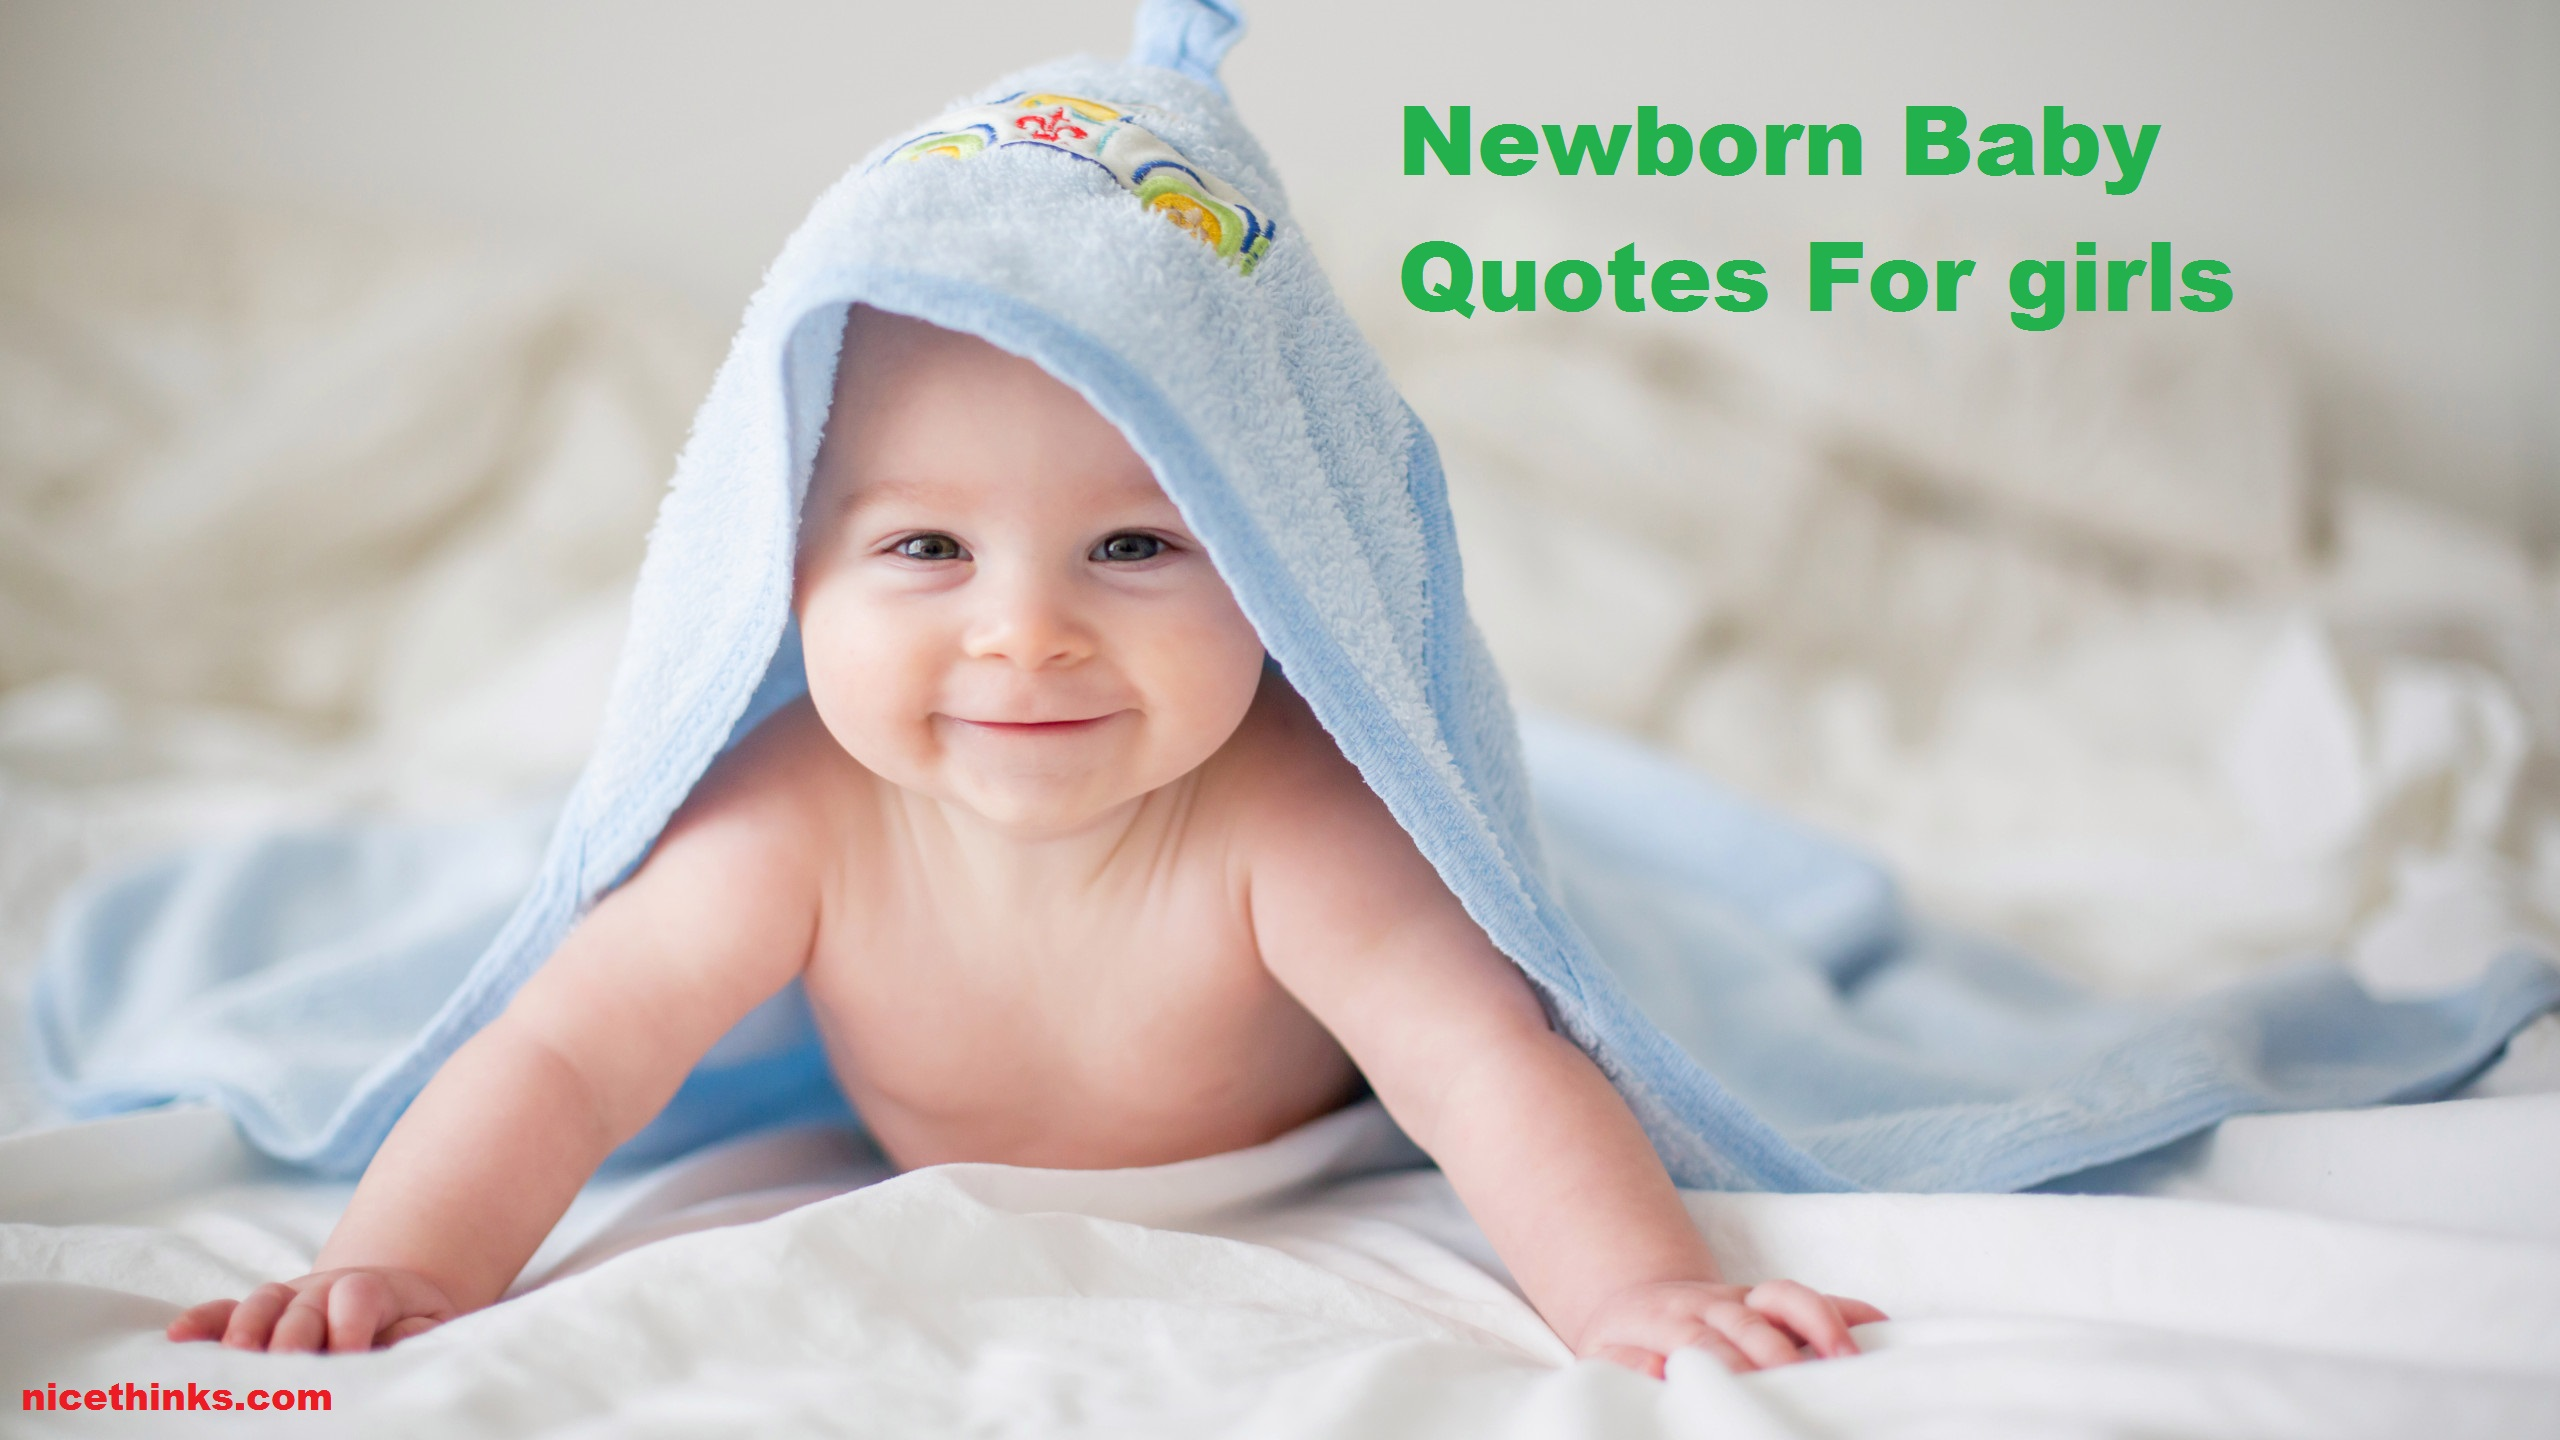 Newborn Baby Quotes For girls